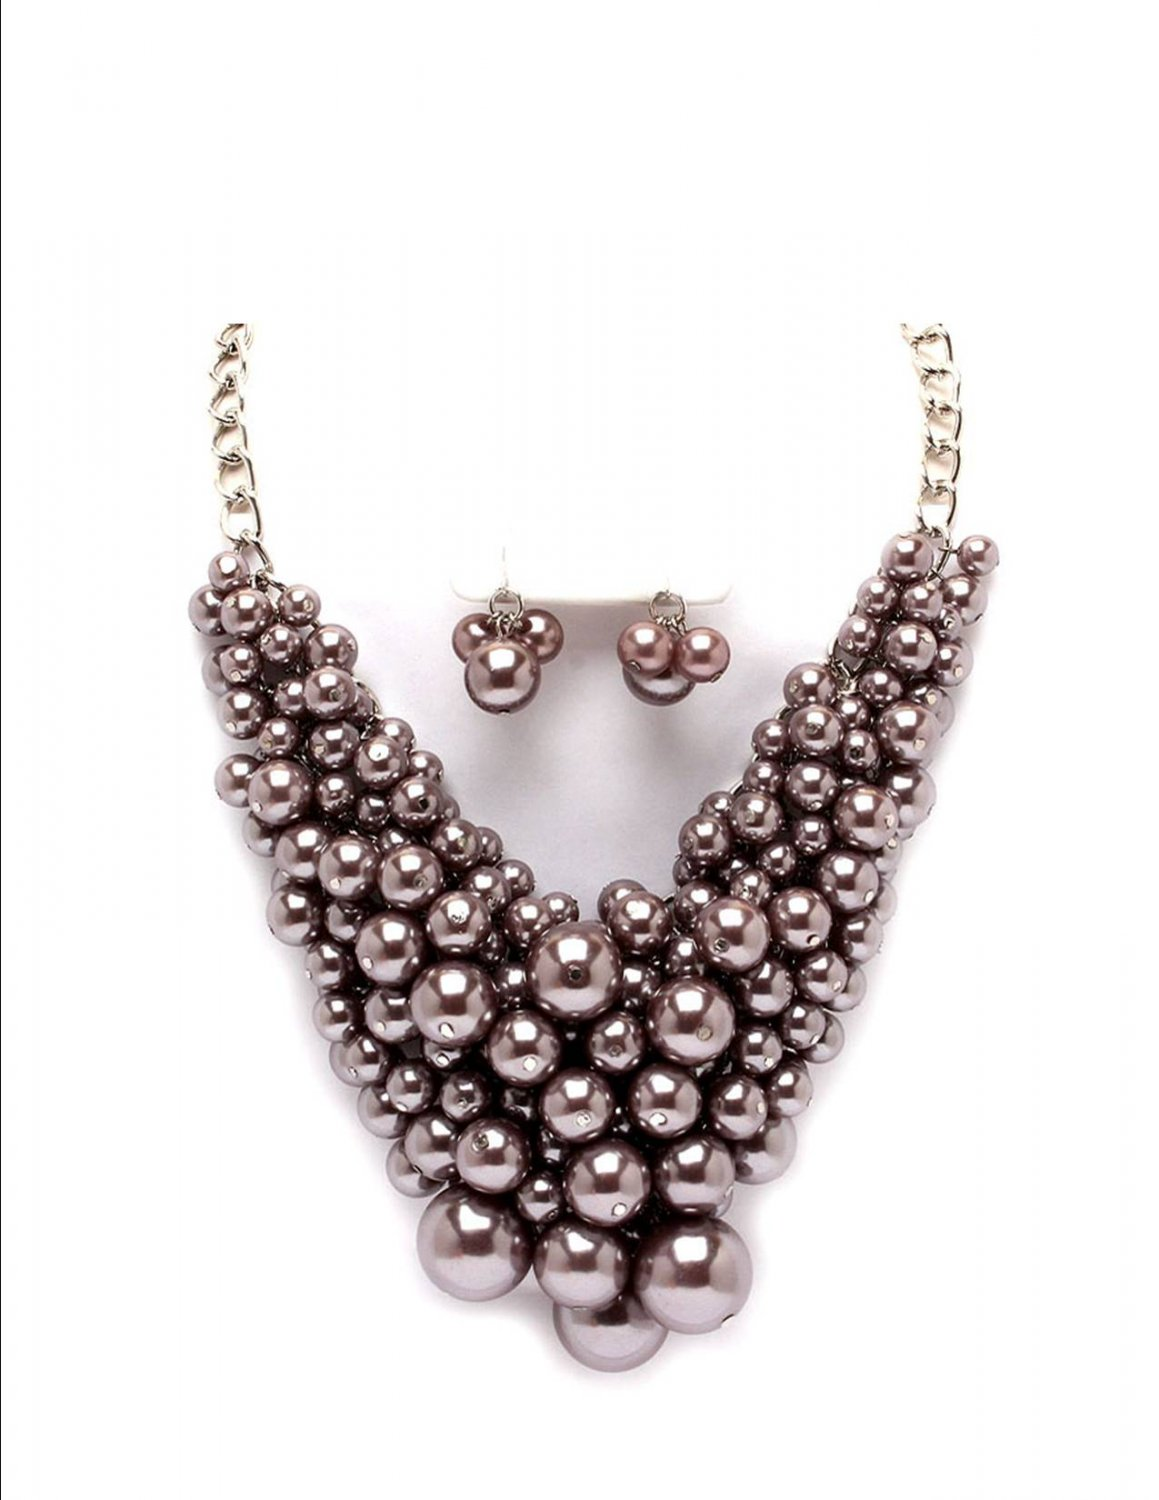 Huge Chunky Lucite Brown Gray Pearl Cluster Balls & Baubles Bib Necklace Earring Set  Prom Bridal